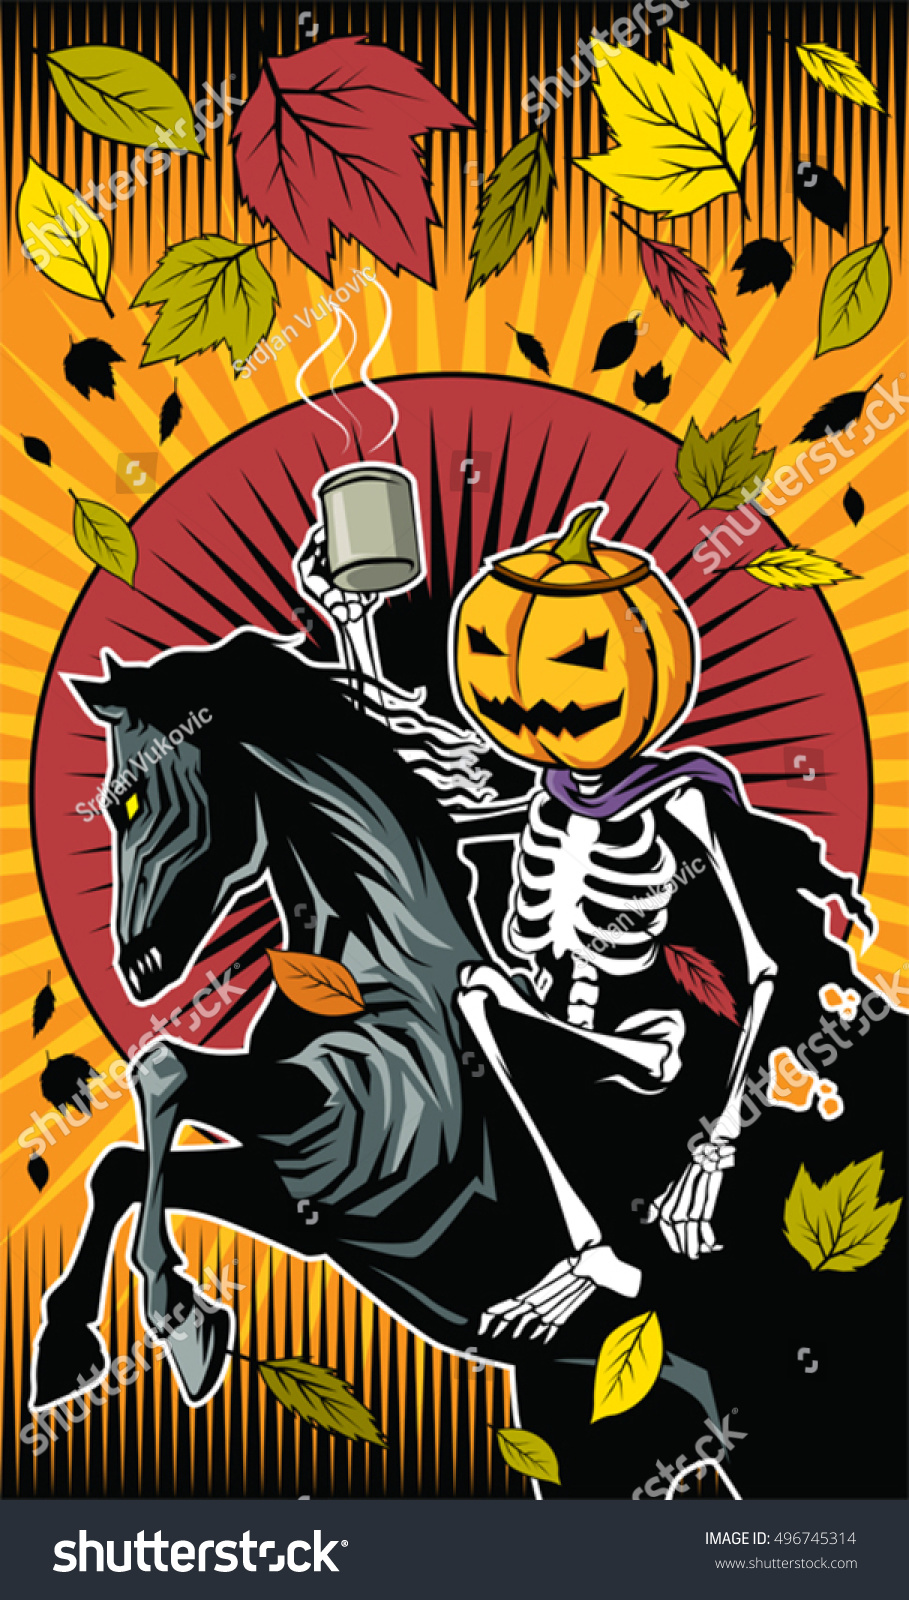 Vector De Stock Libre De Regalias Sobre Illustration Halloween Pumpkin Skeleton Ride On496745314